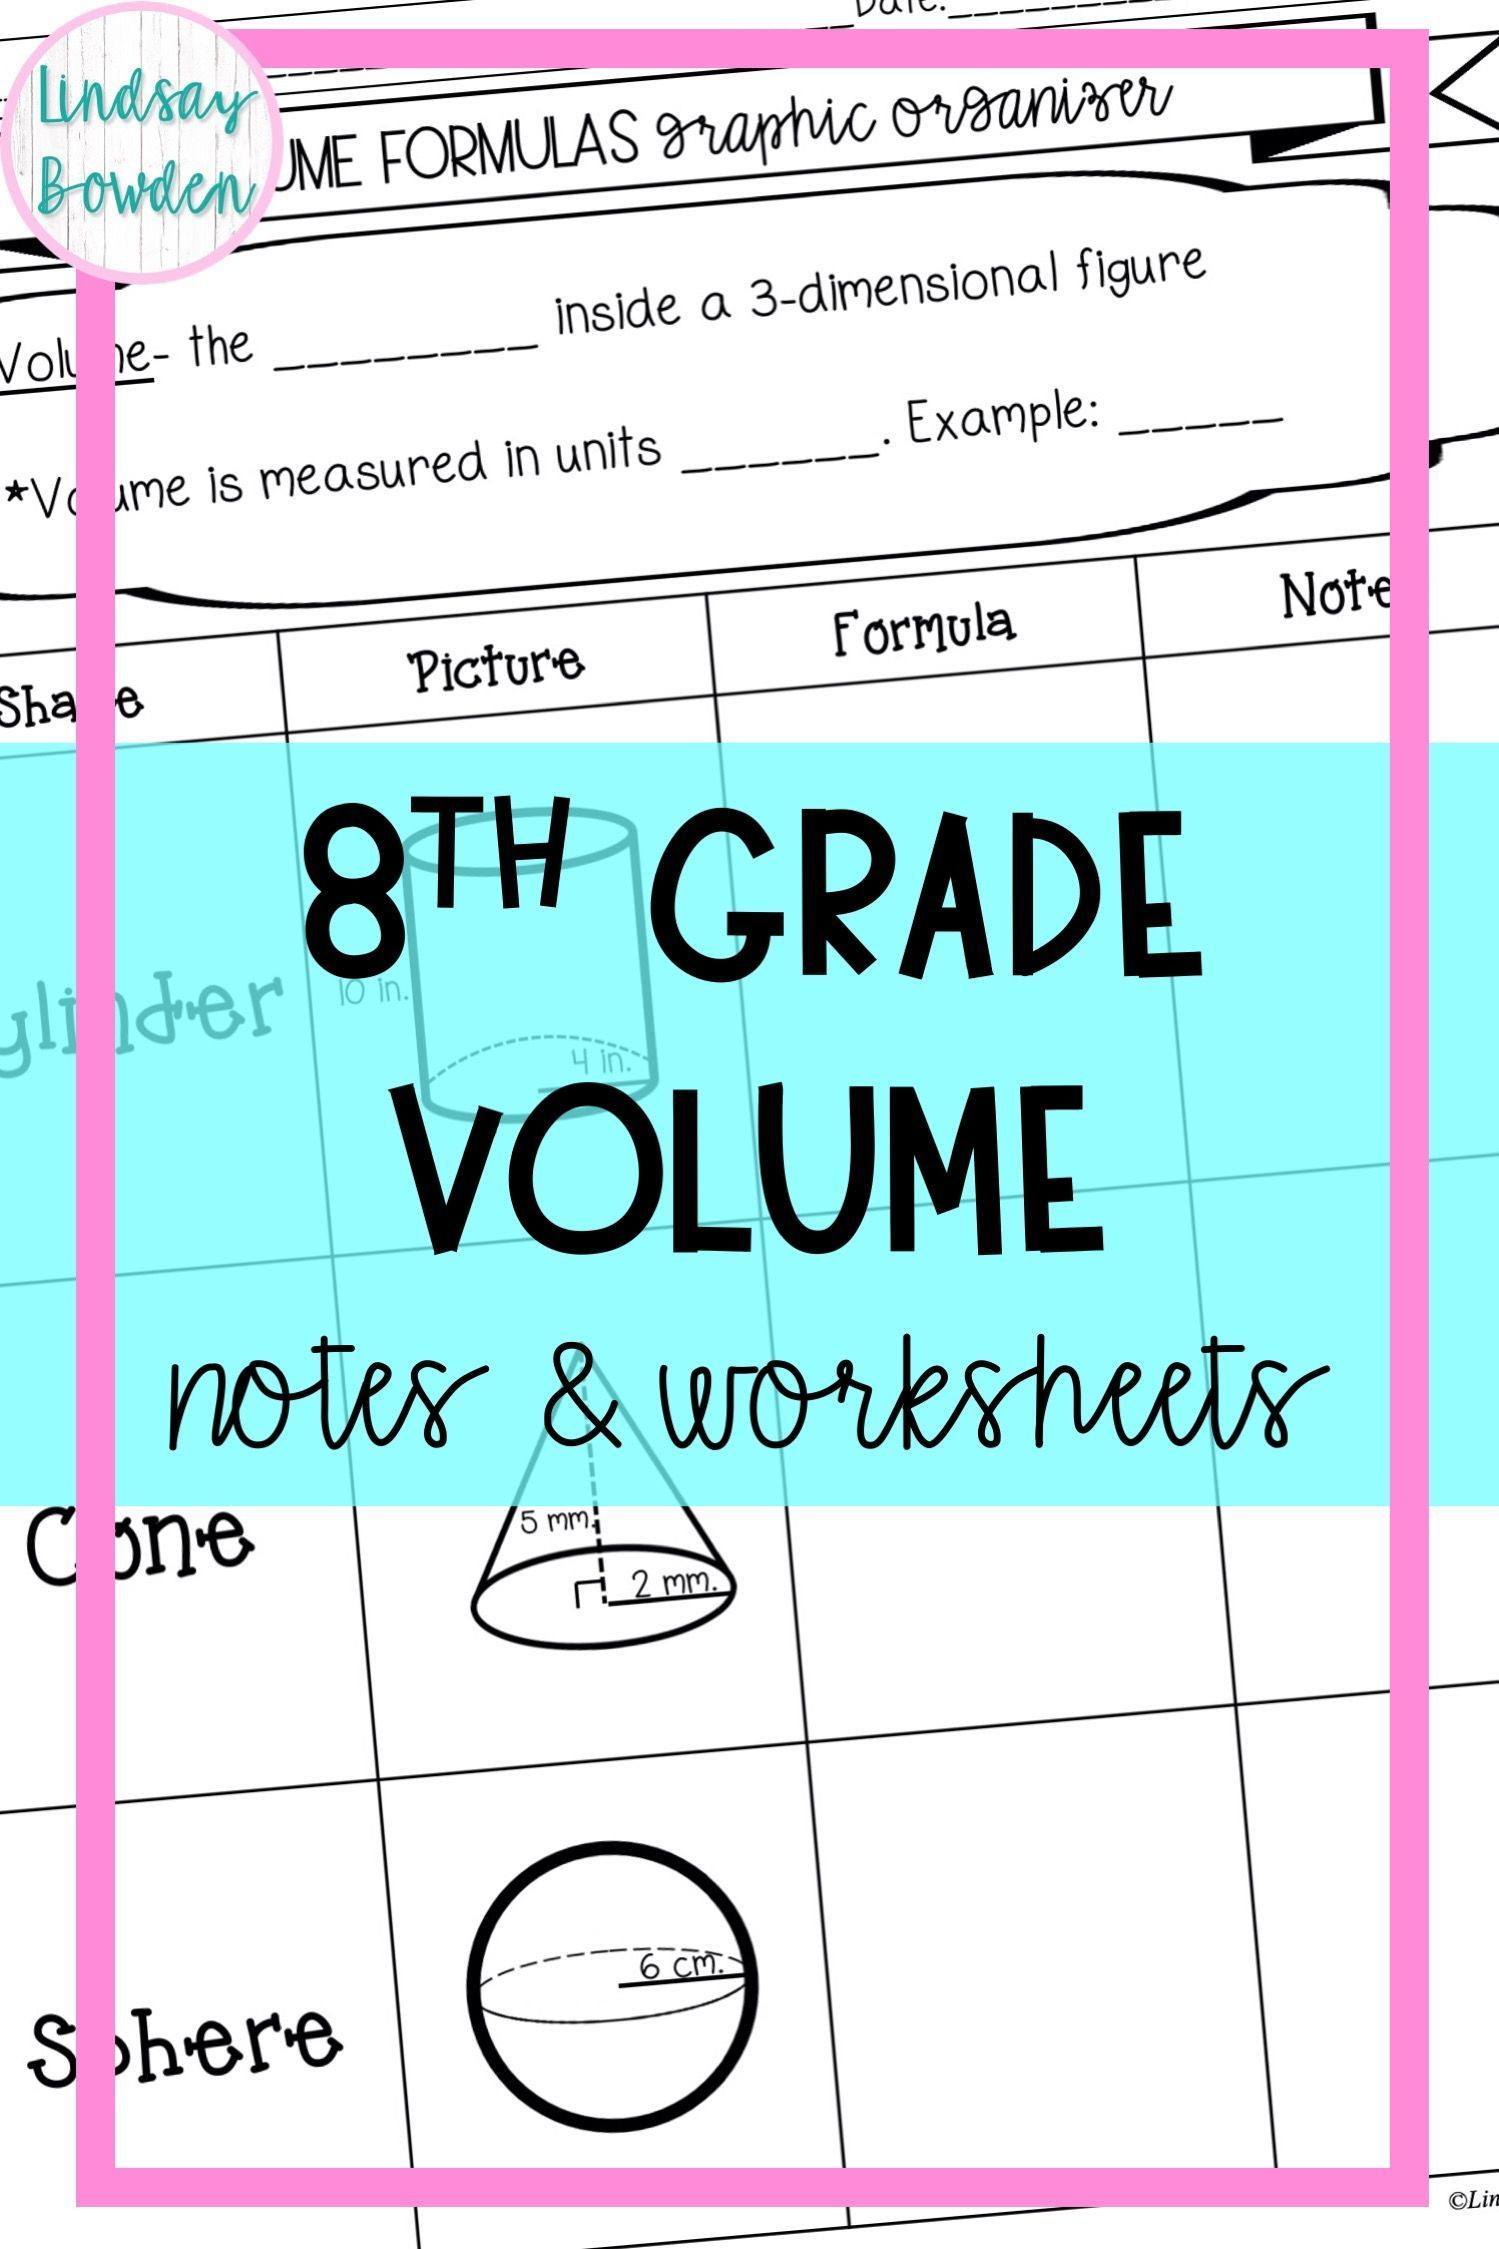 Volume Notes and Worksheets (8th Grade)   Middle school math resources [ 2249 x 1499 Pixel ]